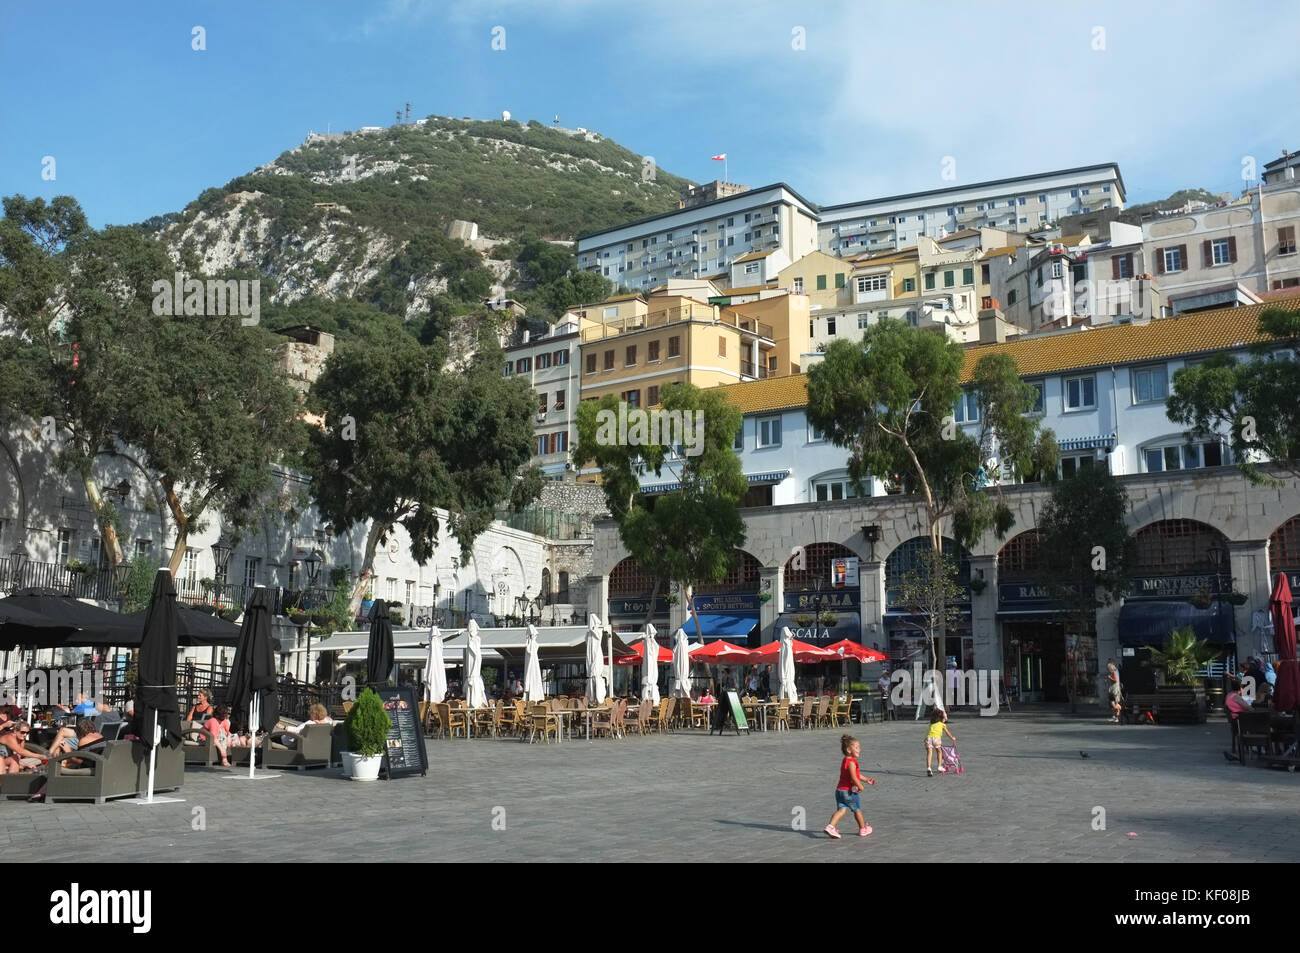 Grand Casemates Square, looking northeast towards the rock, Gibraltar, September 2017 - Stock Image